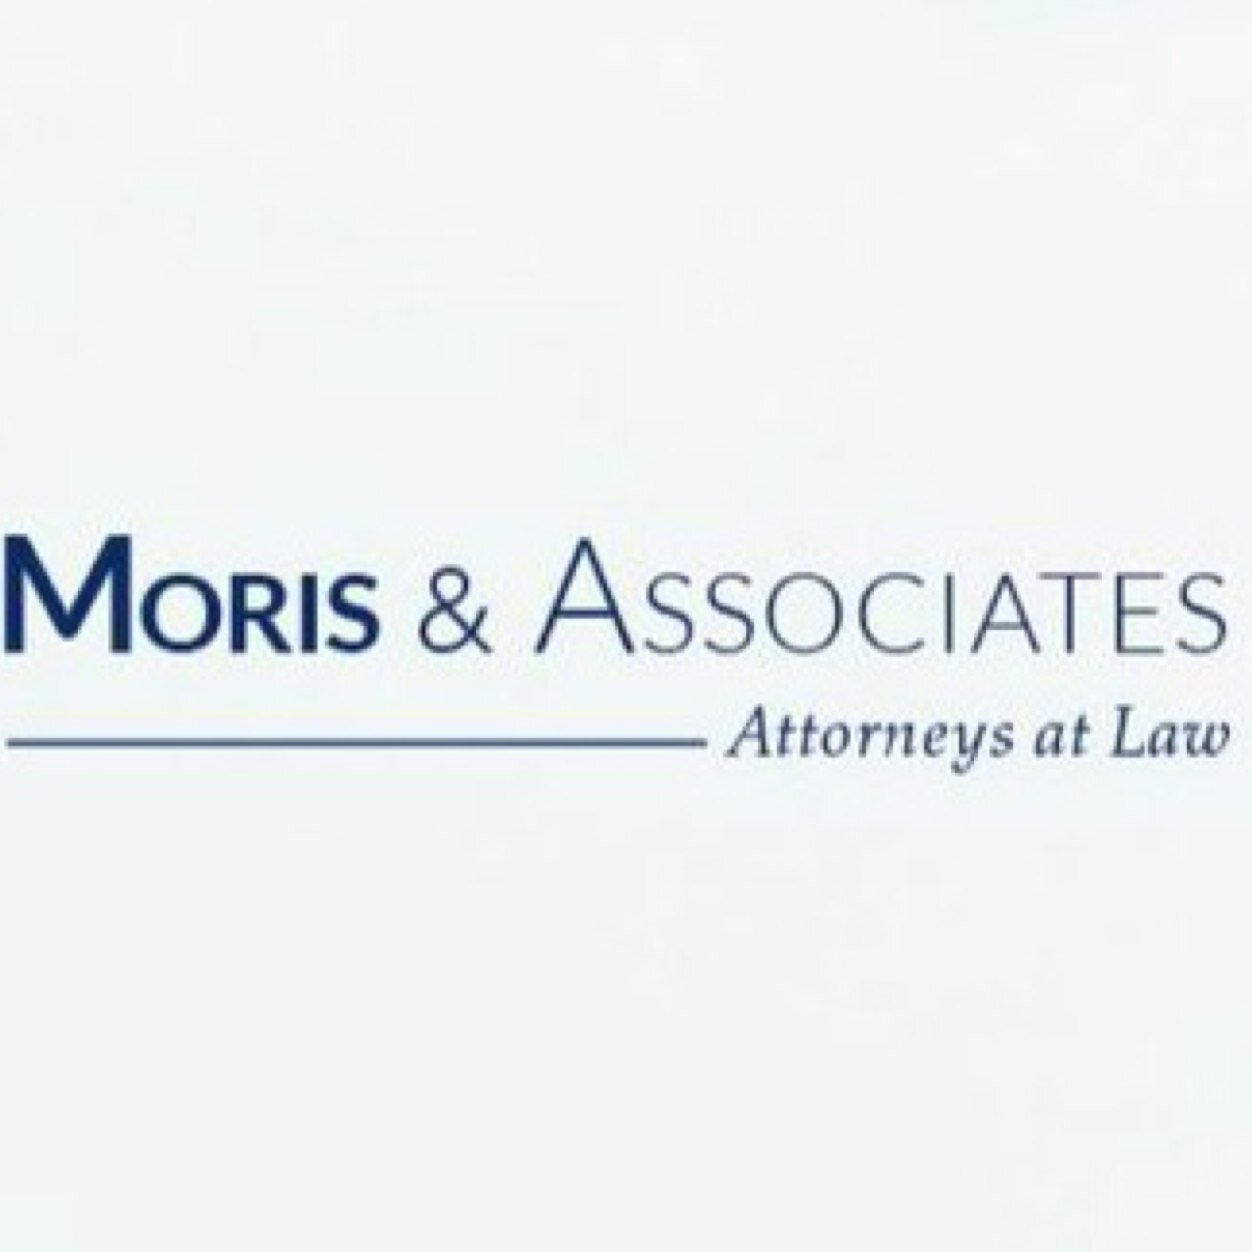 Moris & Associates Attorneys at Law, a Doral Chamber of Commerce member located in South Florida.